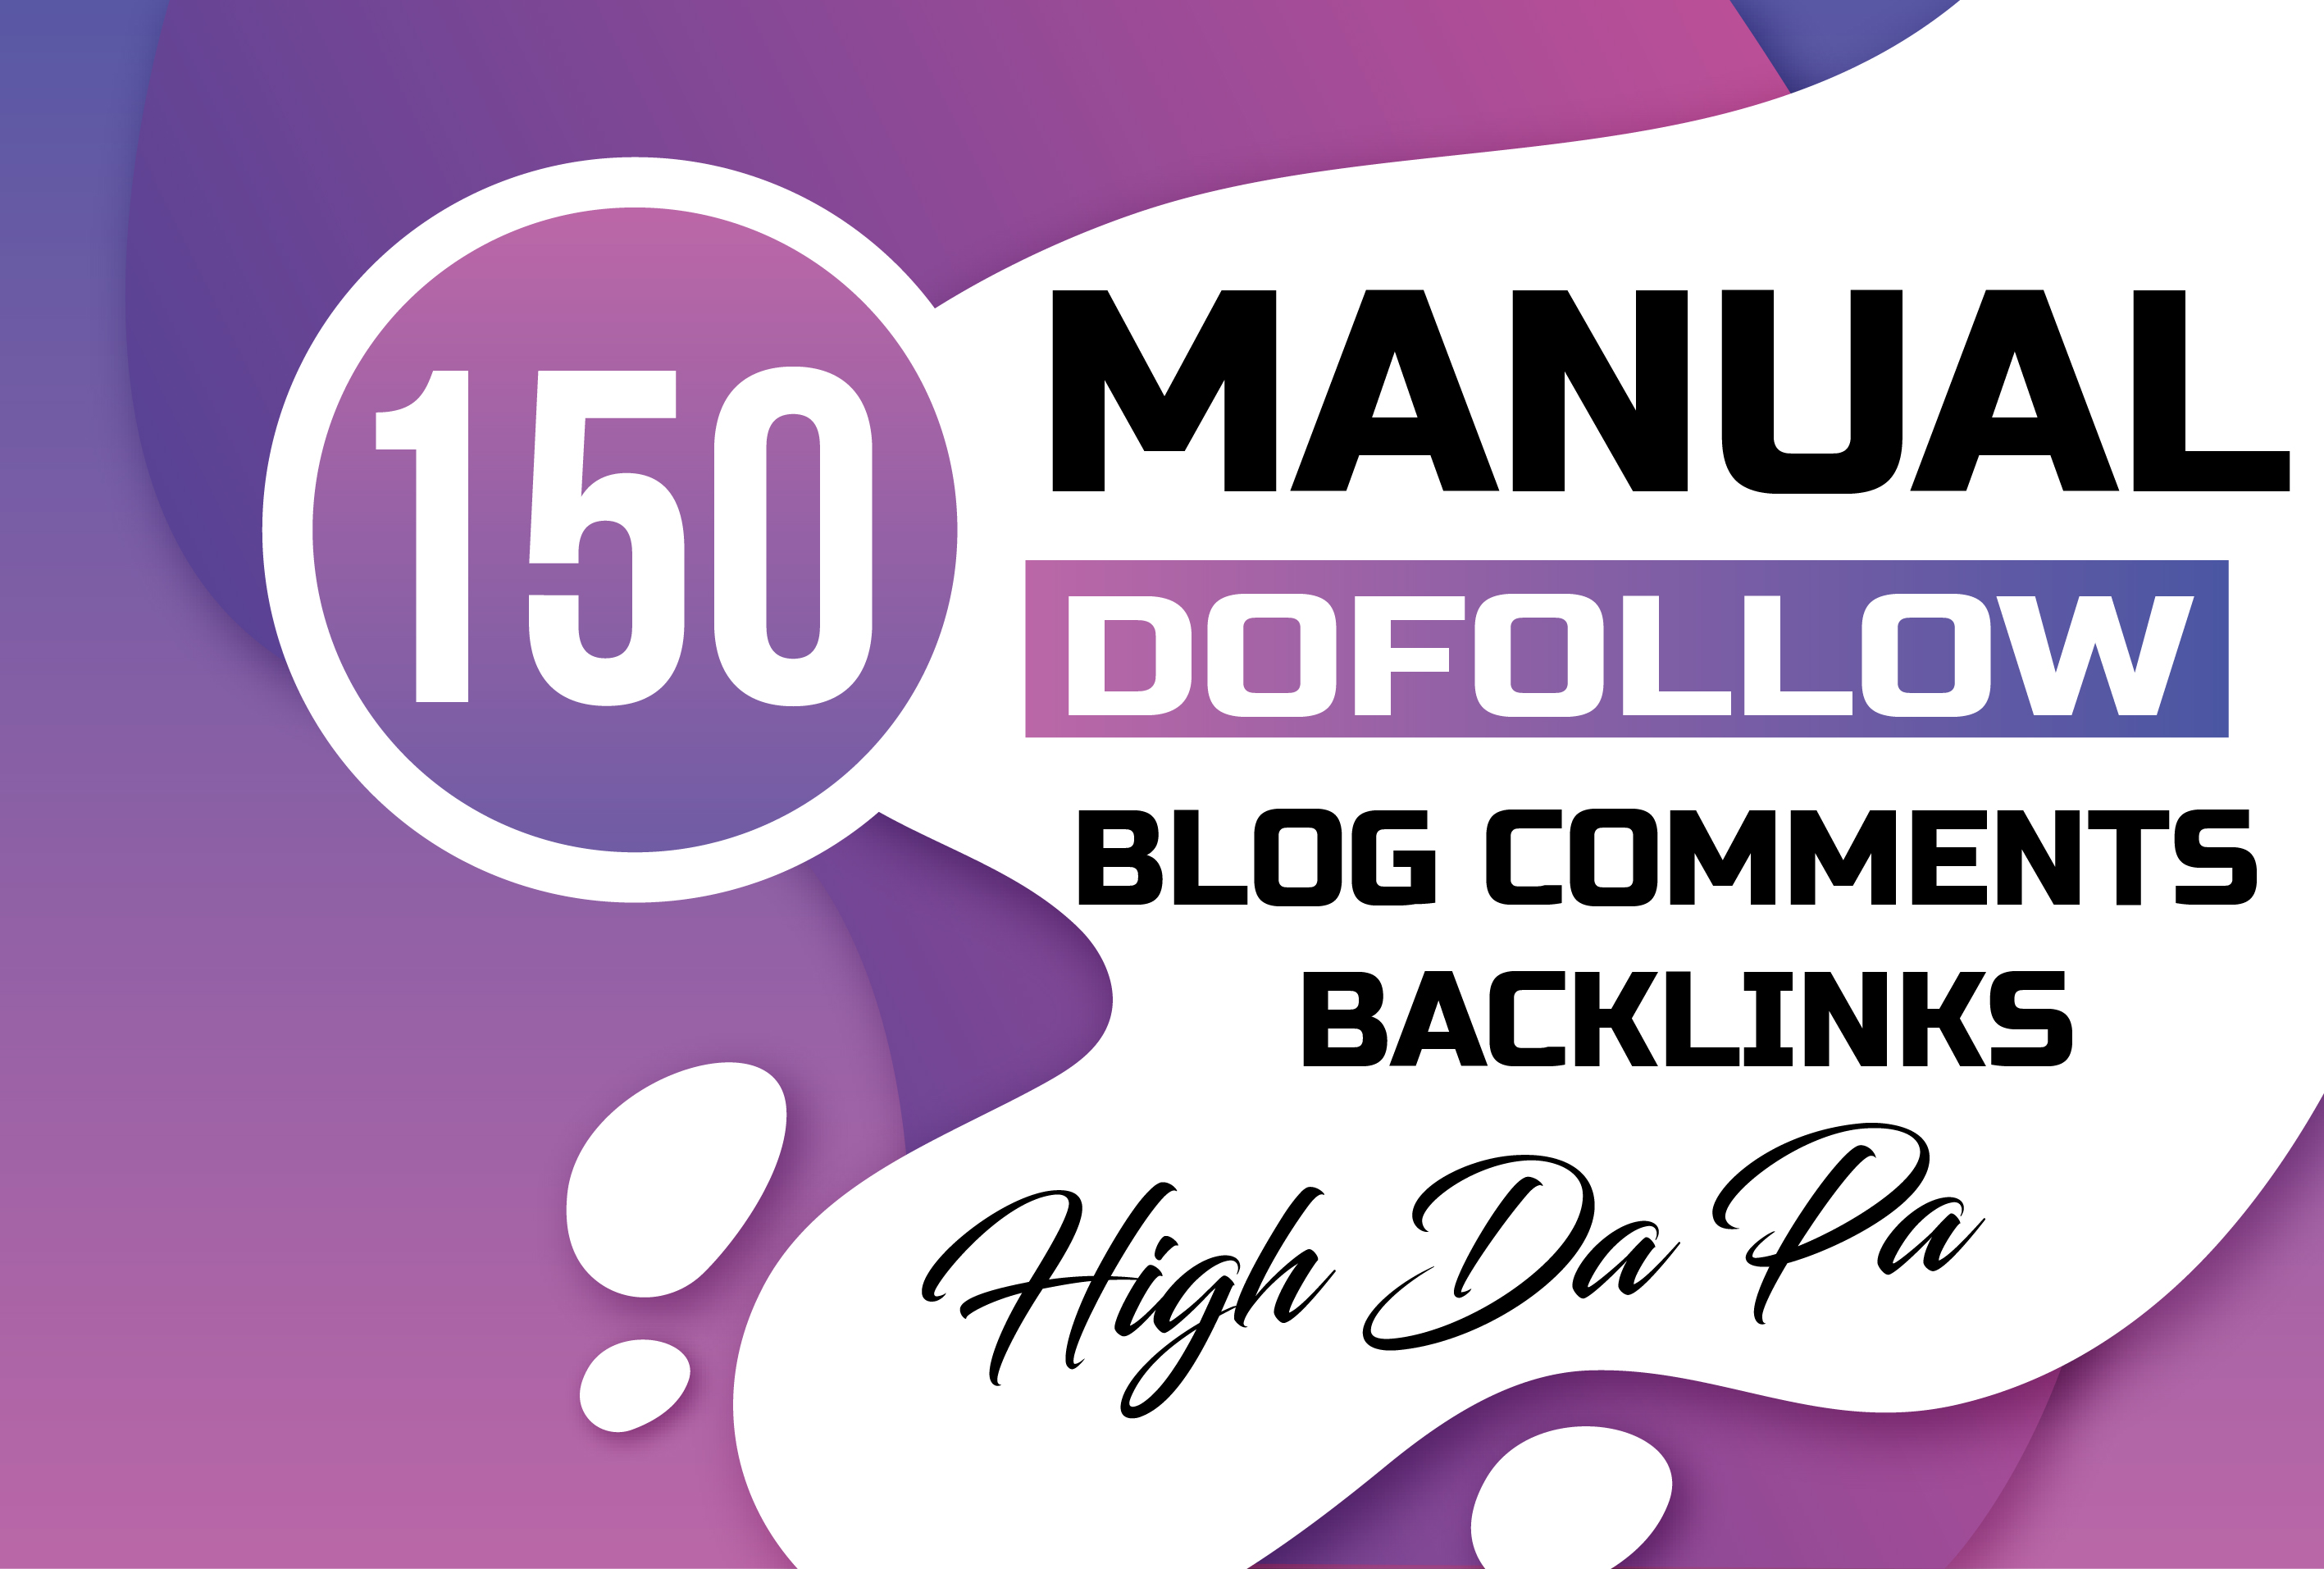 Skyrocket Your Website Ranking With Manually 150 Dofollow Blog Comments Backlinks